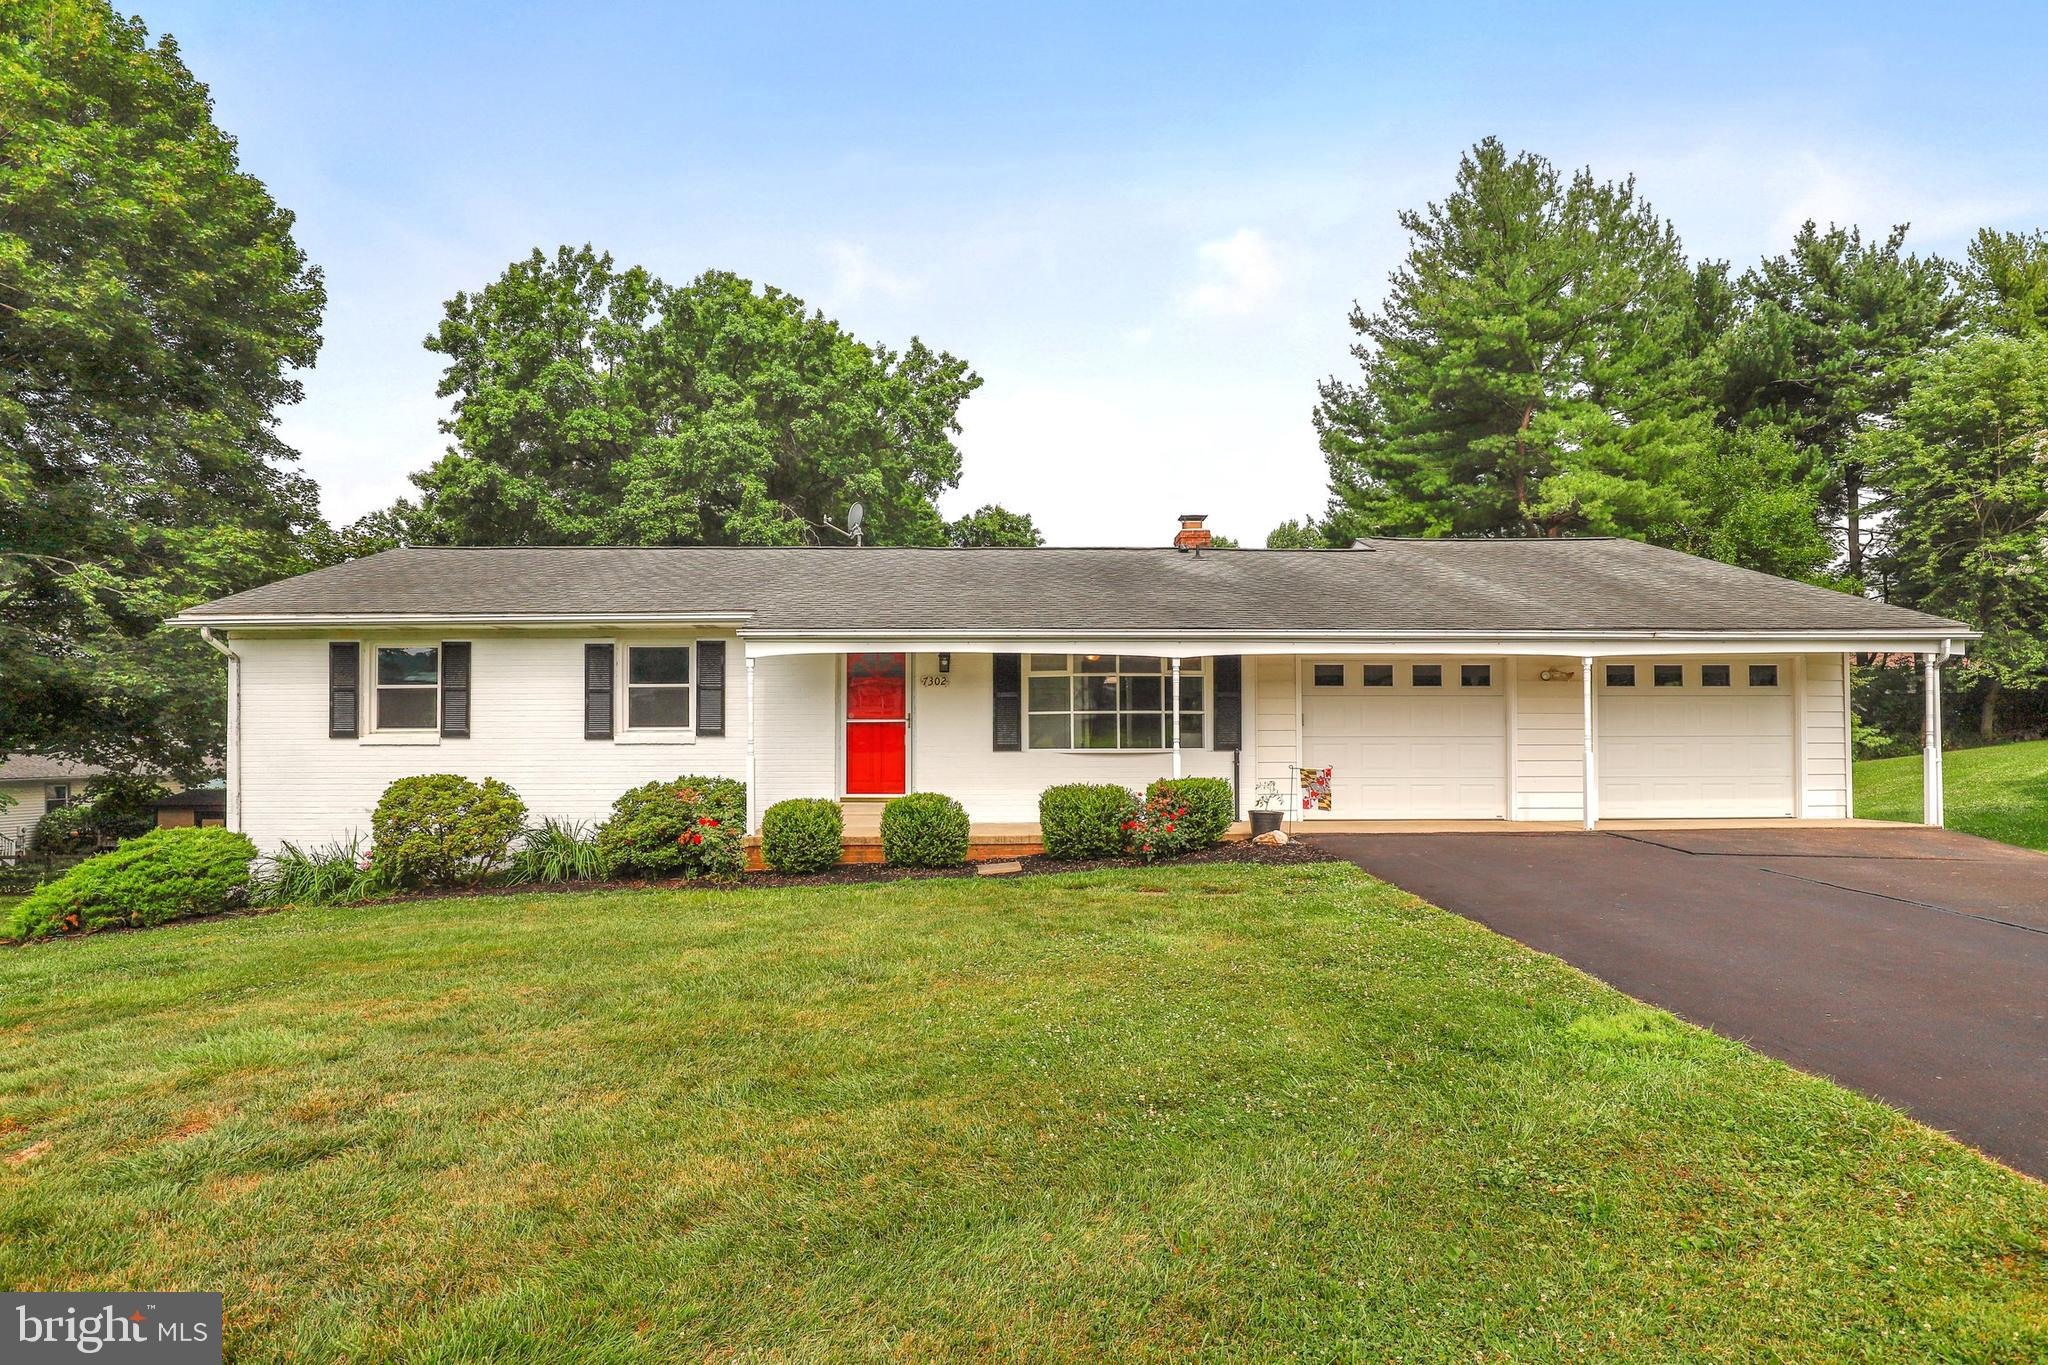 Welcome to 7302 Aspen Ct in picturesque Middletown.  This lovingly cared for and updated cul-de-sac